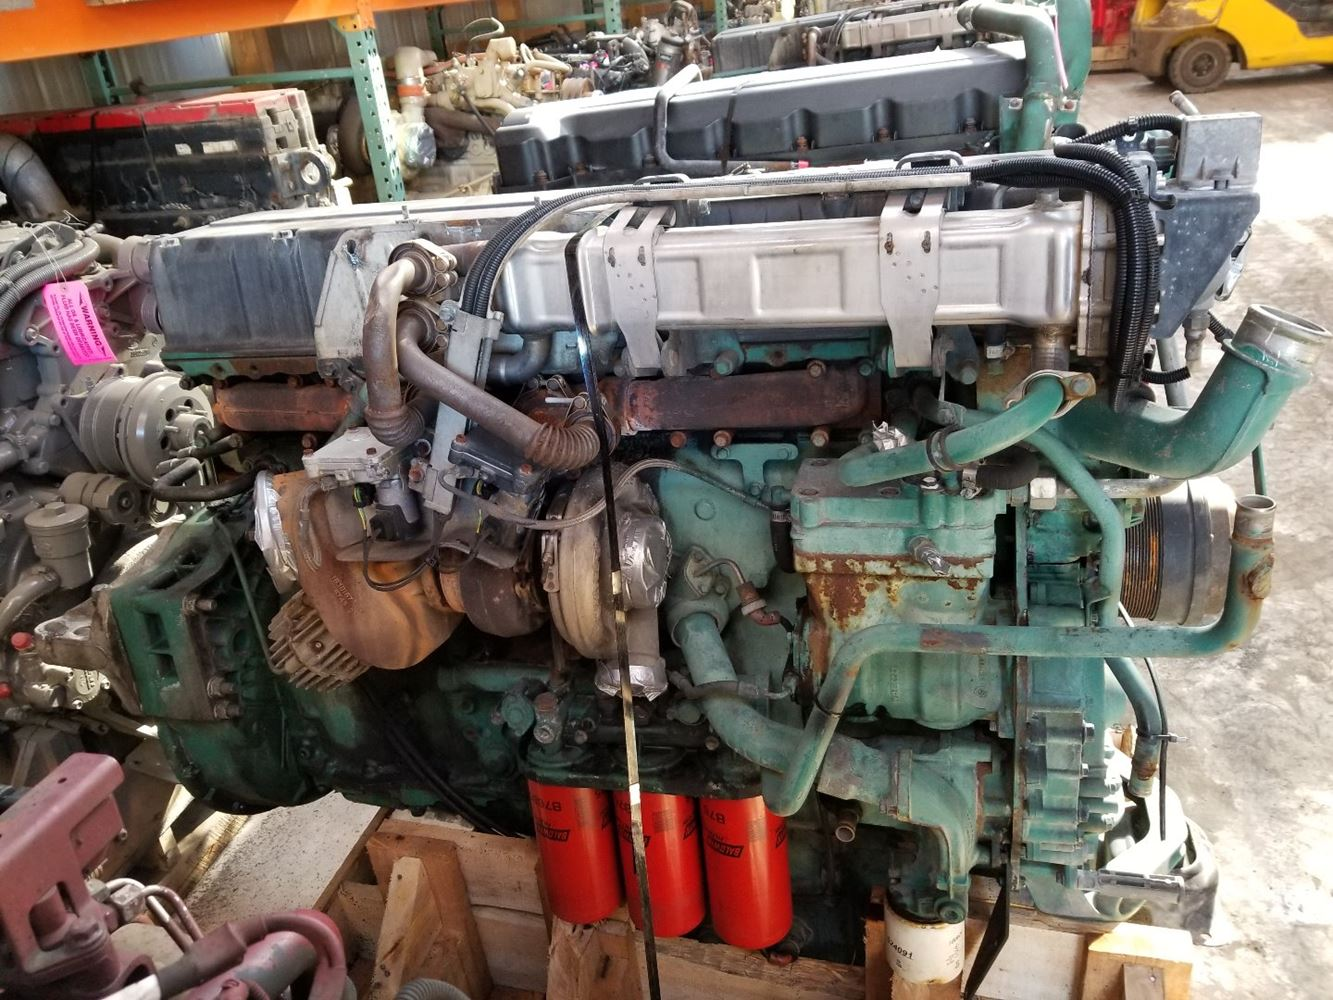 Volvo D12 Truck Engines Diagram Wiring Diagrams D13 Engine 2005 Stock P 1237 Assys Tpi Brake